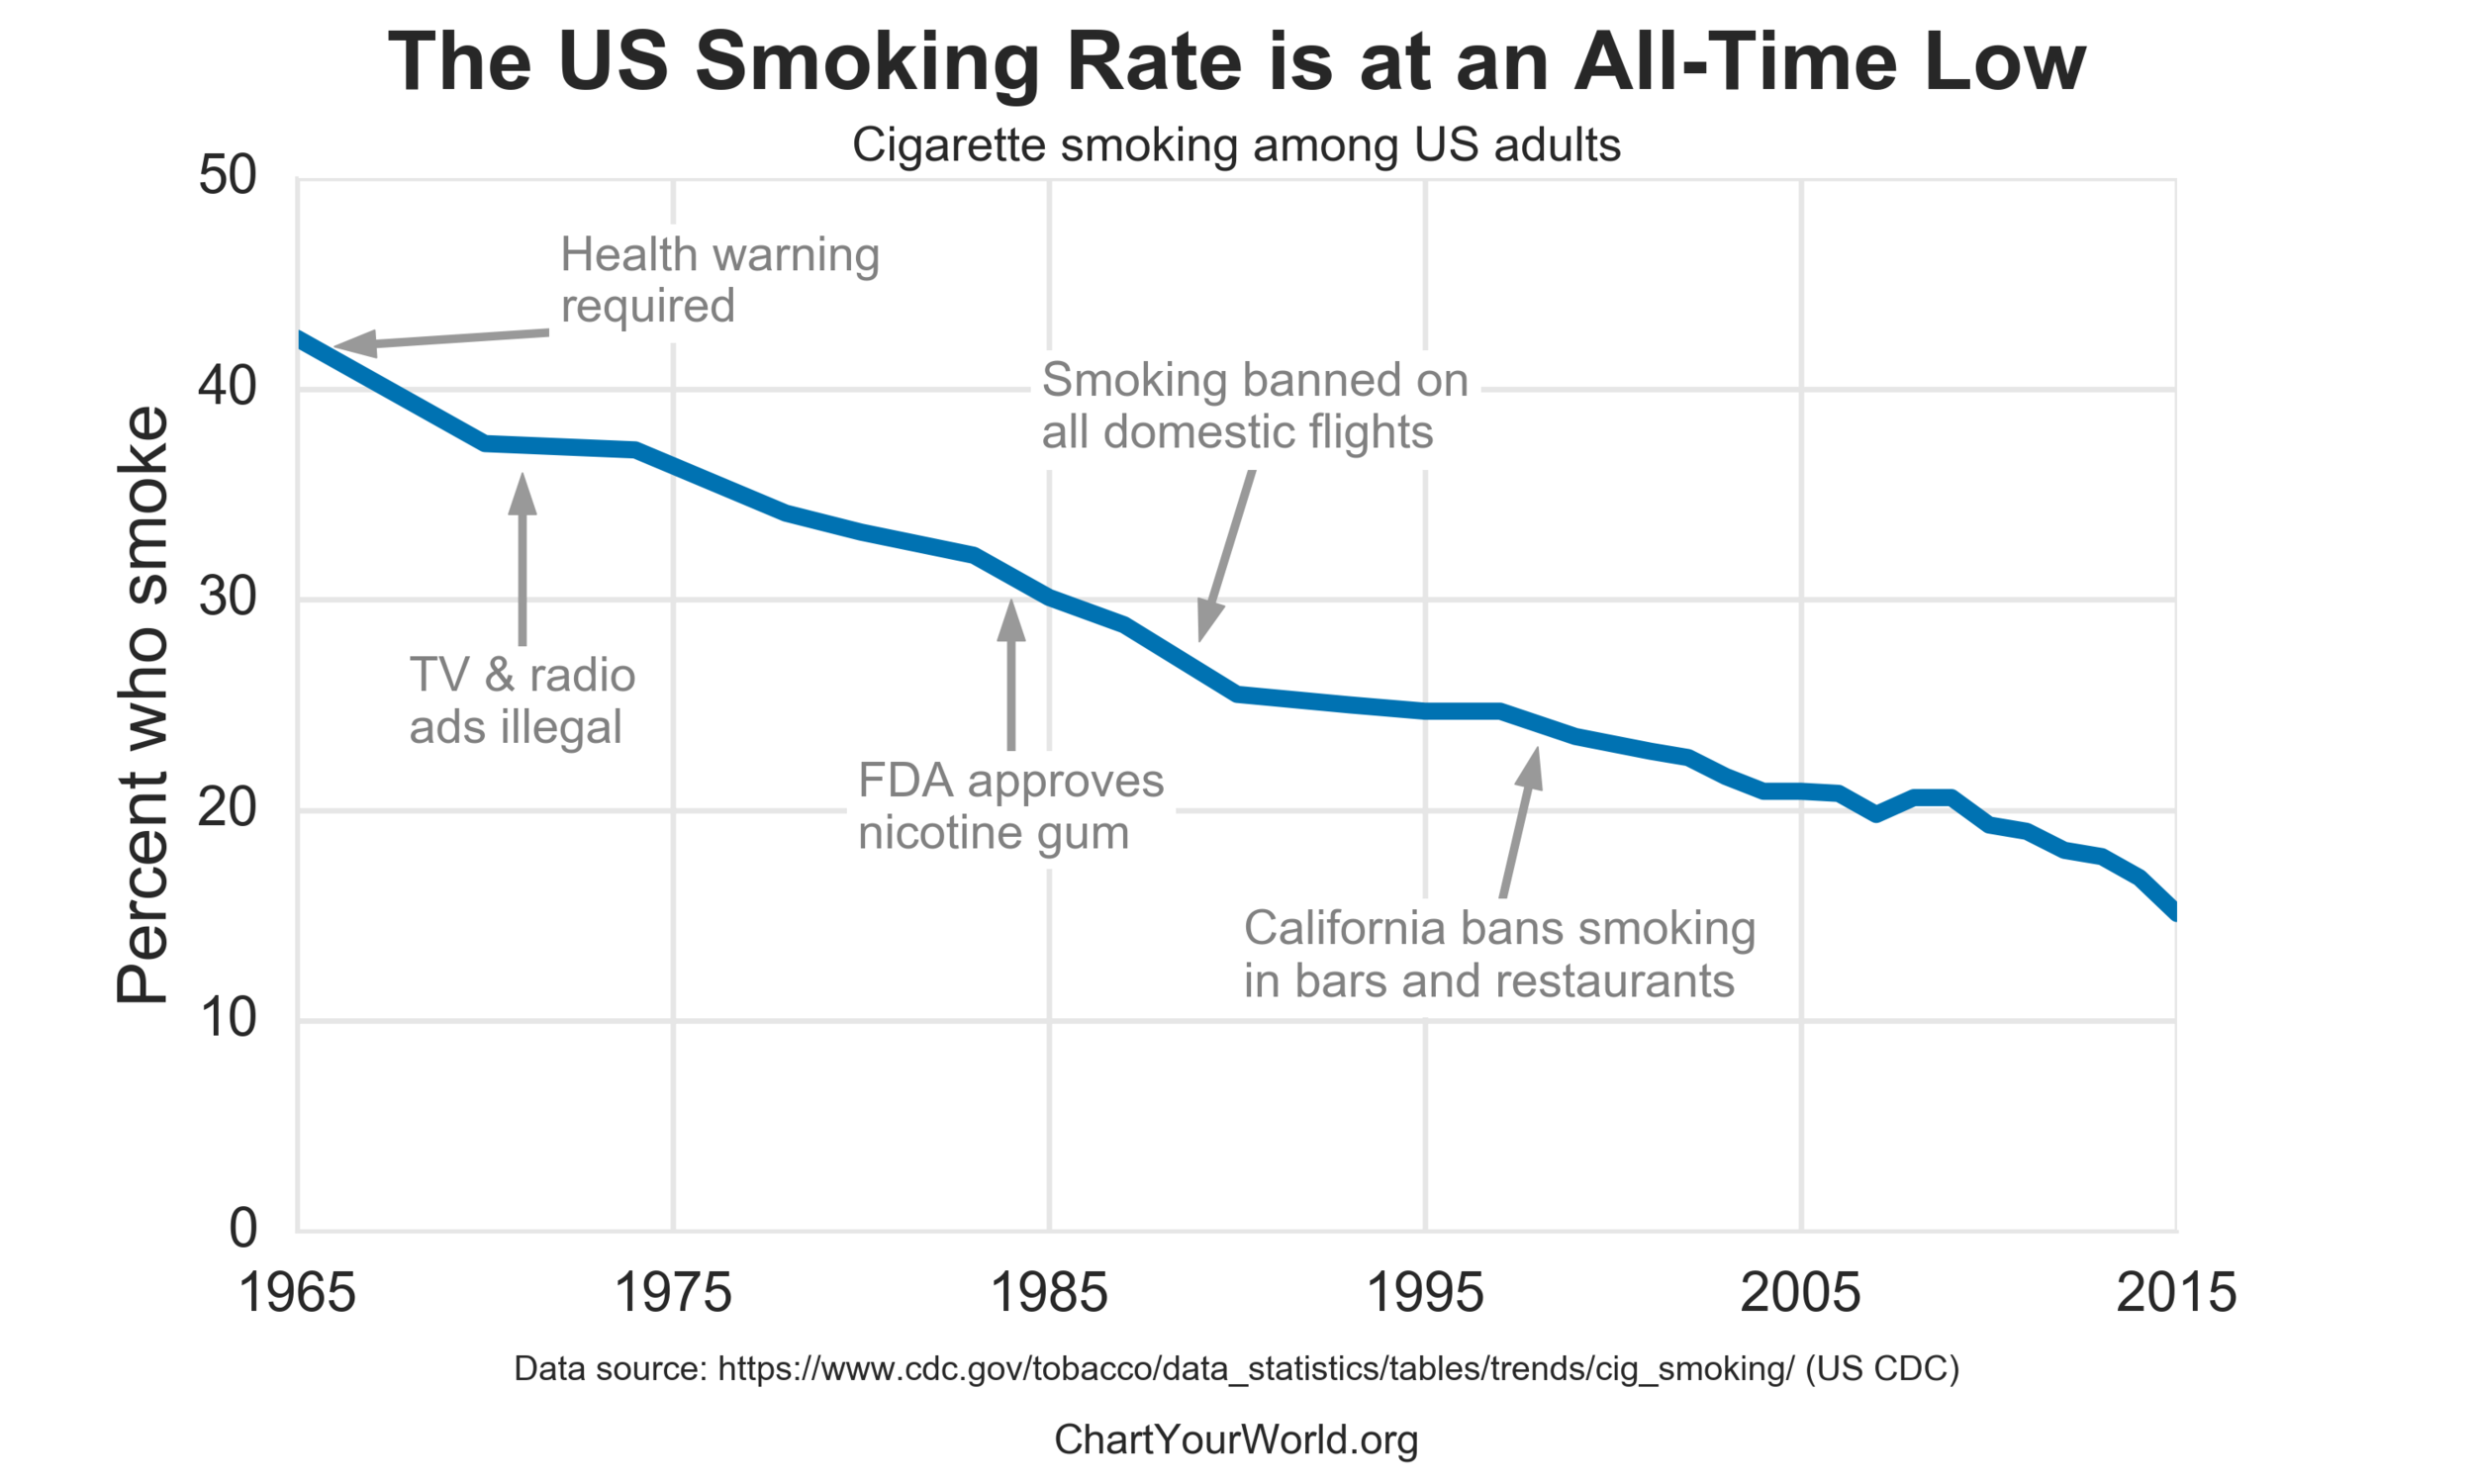 us_smoking_rate_by_year.png